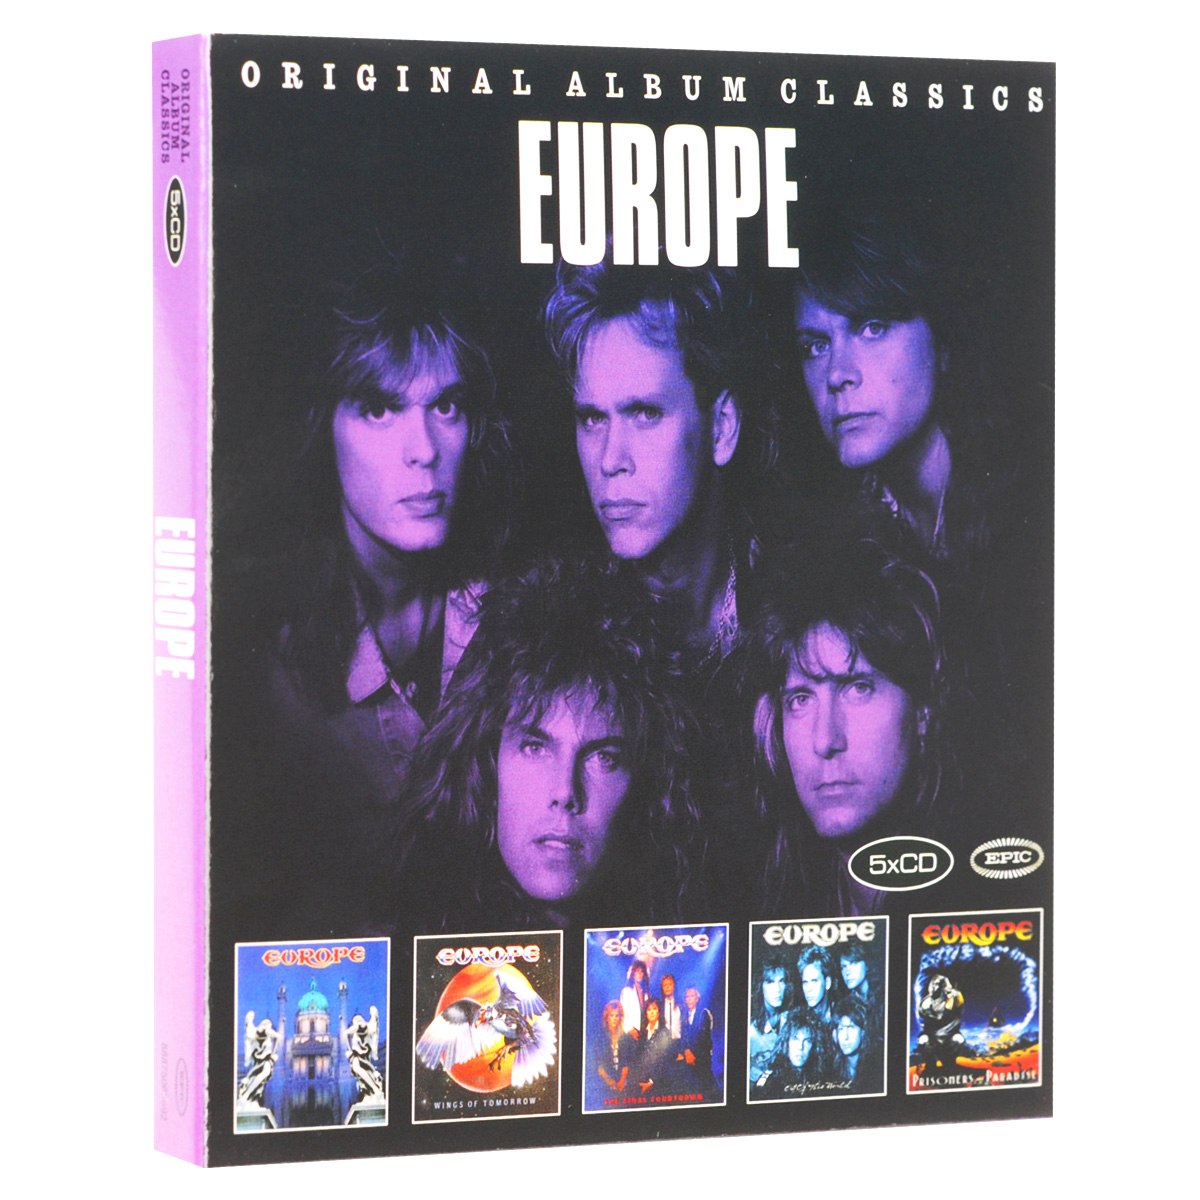 Europe Europe. Original Album Classics (5 CD) europe europe war of kings deluxe edition cd dvd